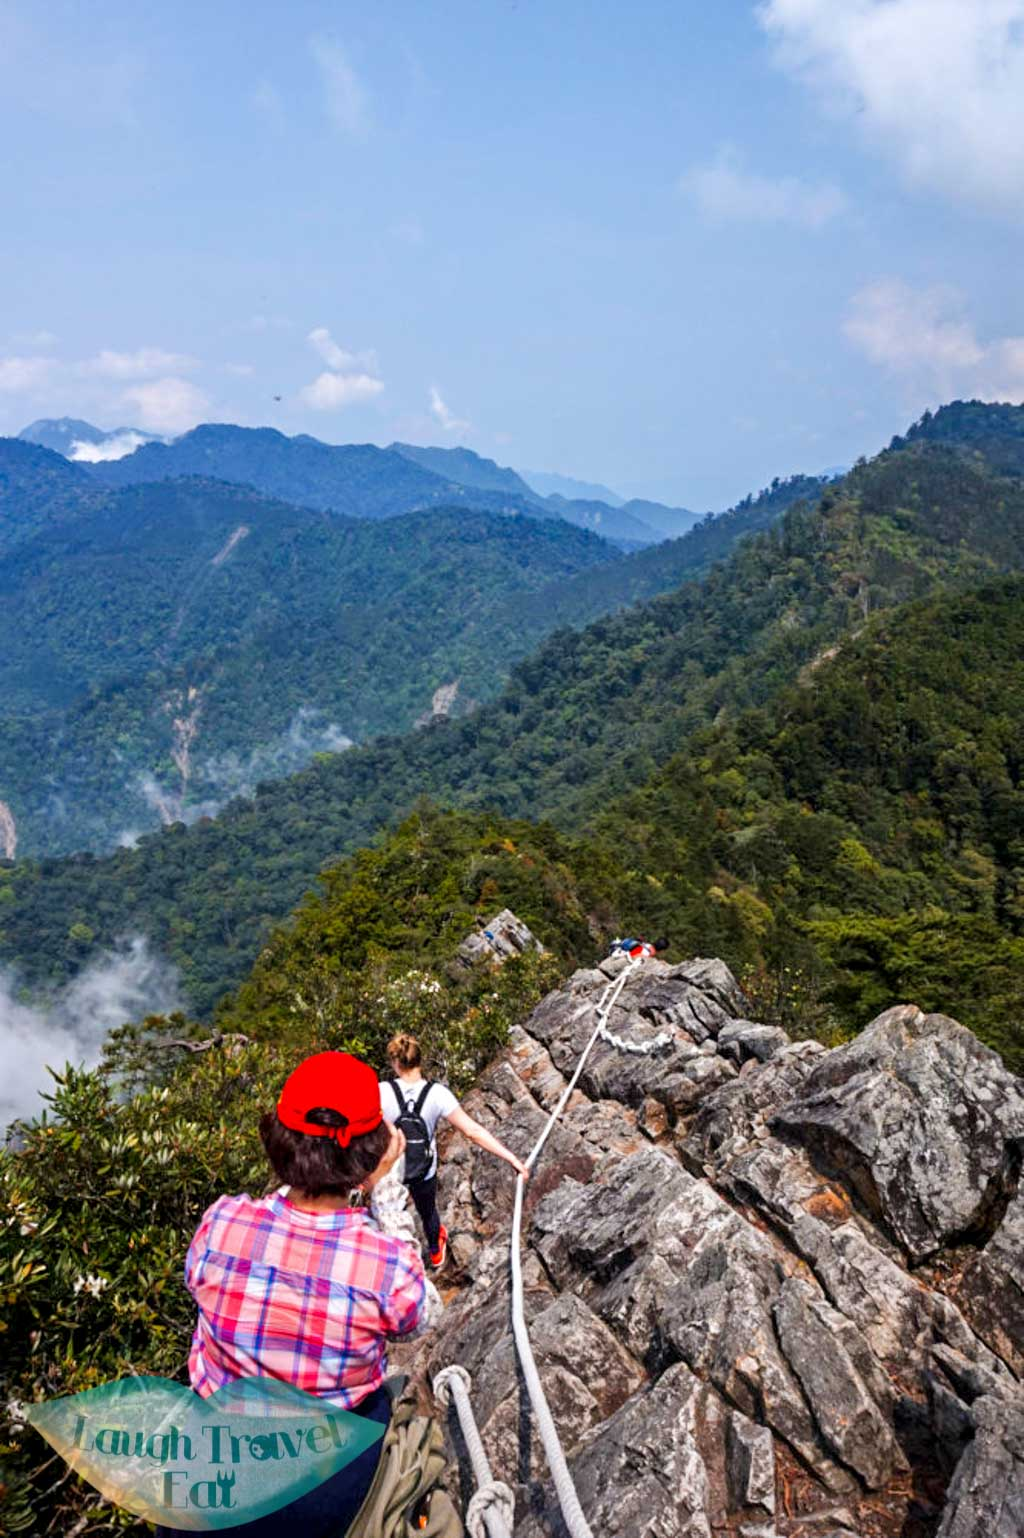 Trail leading down from mountain top atYuan Zui Mountain in Dasyueshan National Forest Recreational Area, Taichung - Laugh Travel Eat